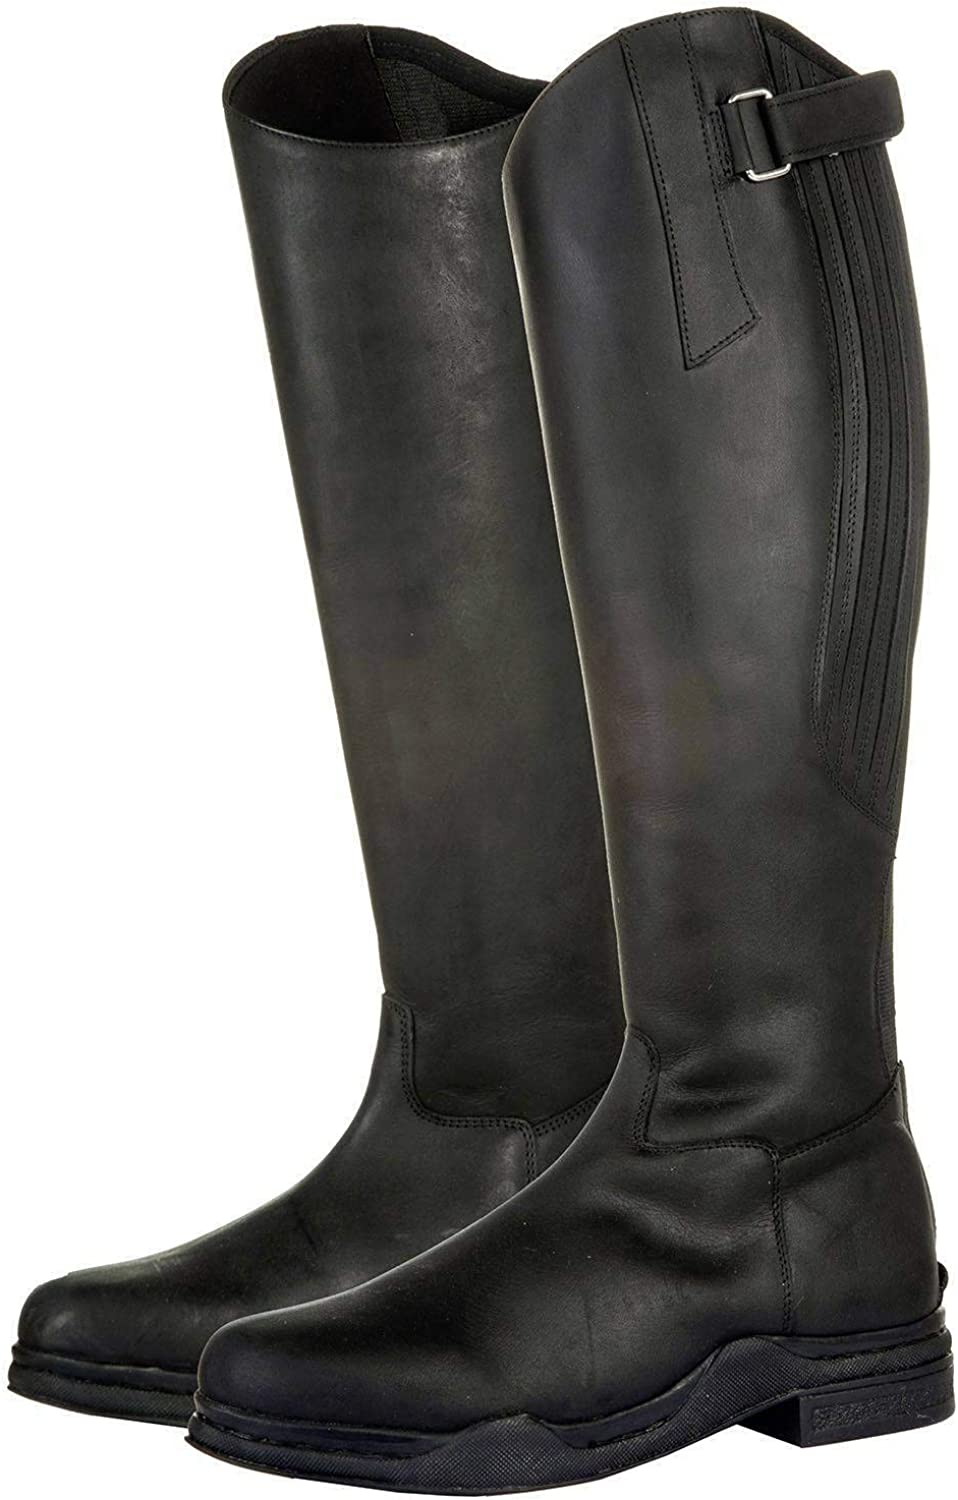 Country HKM Black Leather Long Horse Riding Yard Mucking Out Water Proof Boots (42)